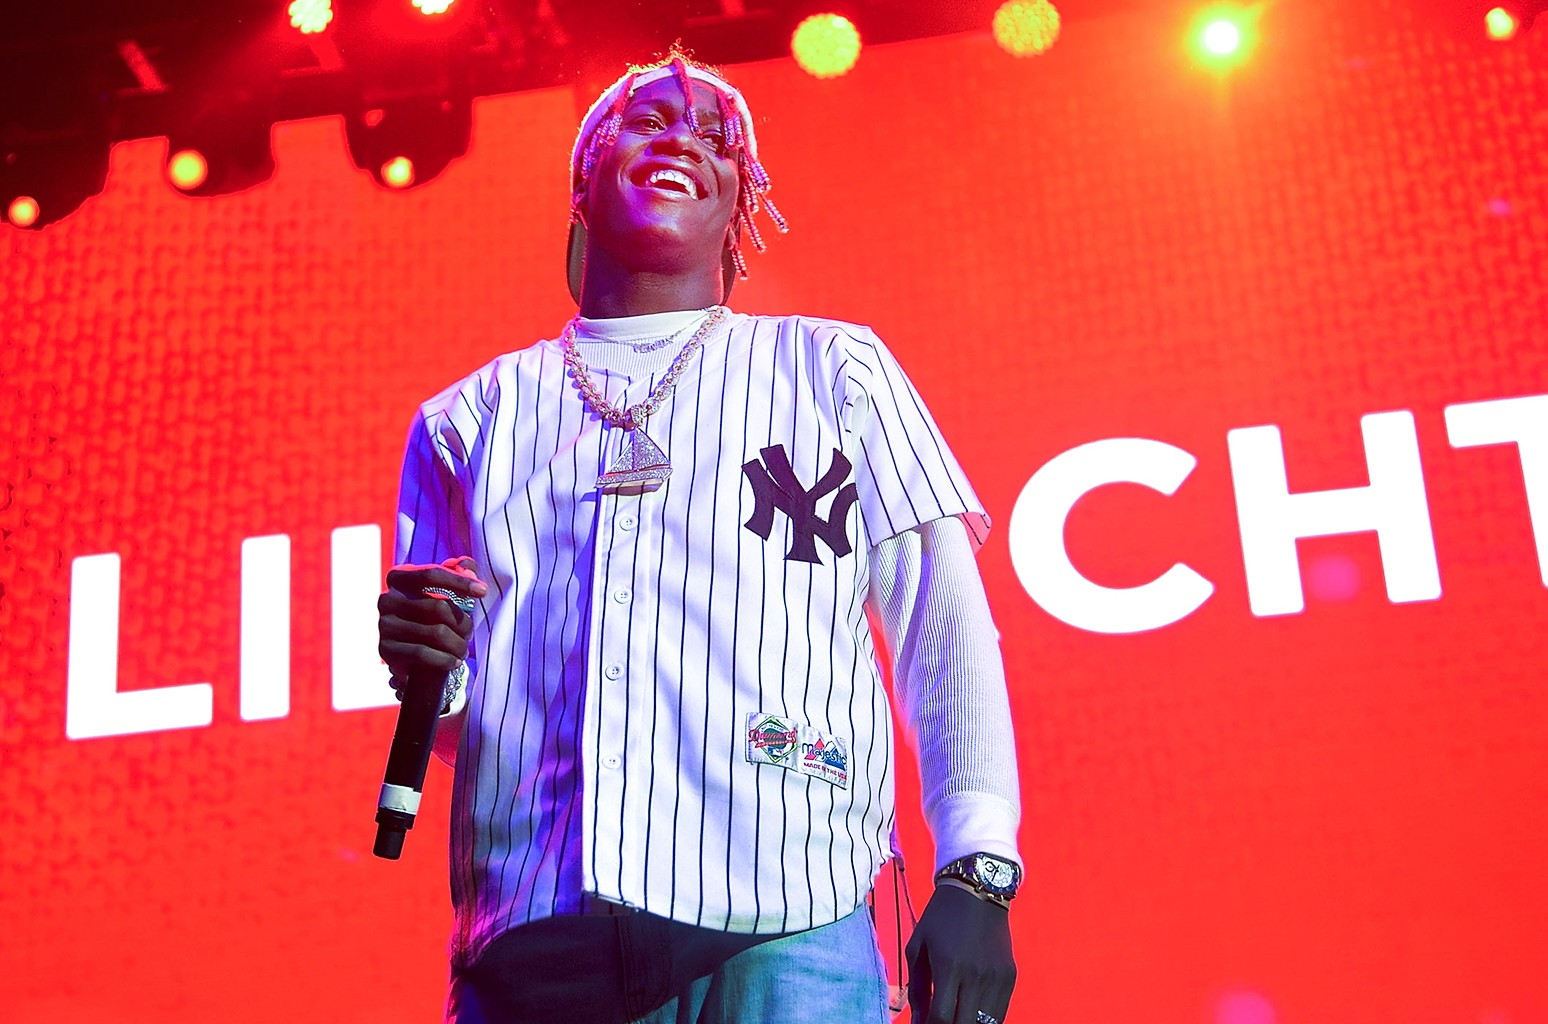 Lil Yachty performs at Prudential Center on Dec. 3, 2016 in Newark, N.J.